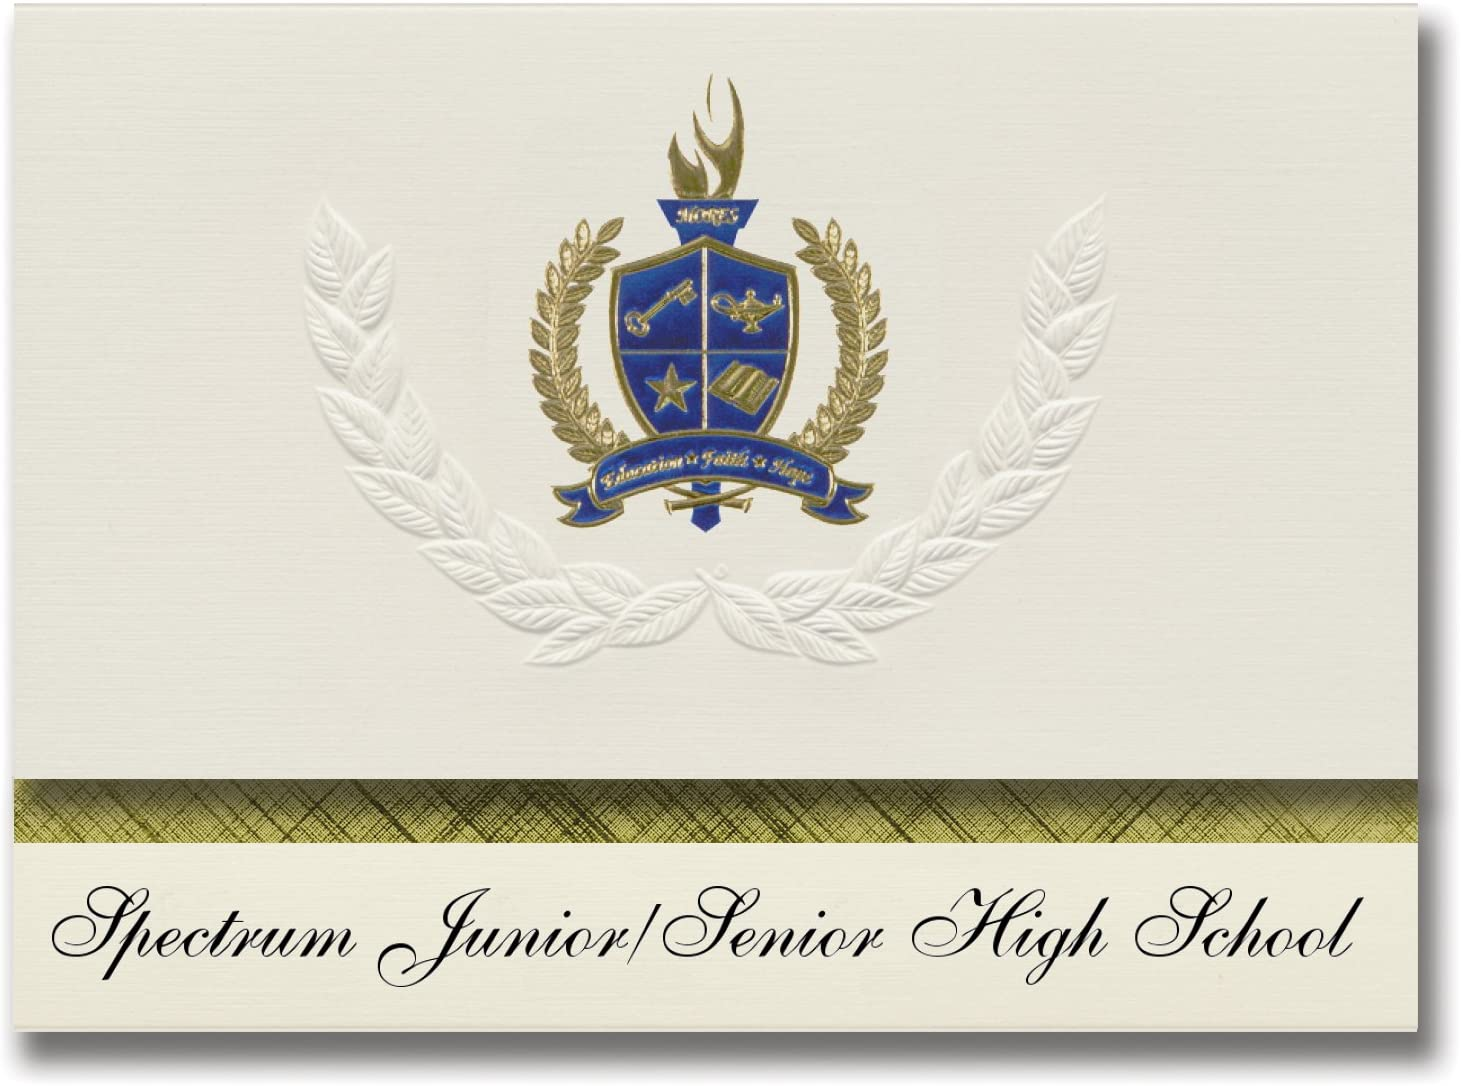 Signature Announcements Spectrum Junior/Senior High School (Stuart, FL) Graduation Announcements, Presidential style, Basic package of 25 with Gold & Blue Metallic Foil seal